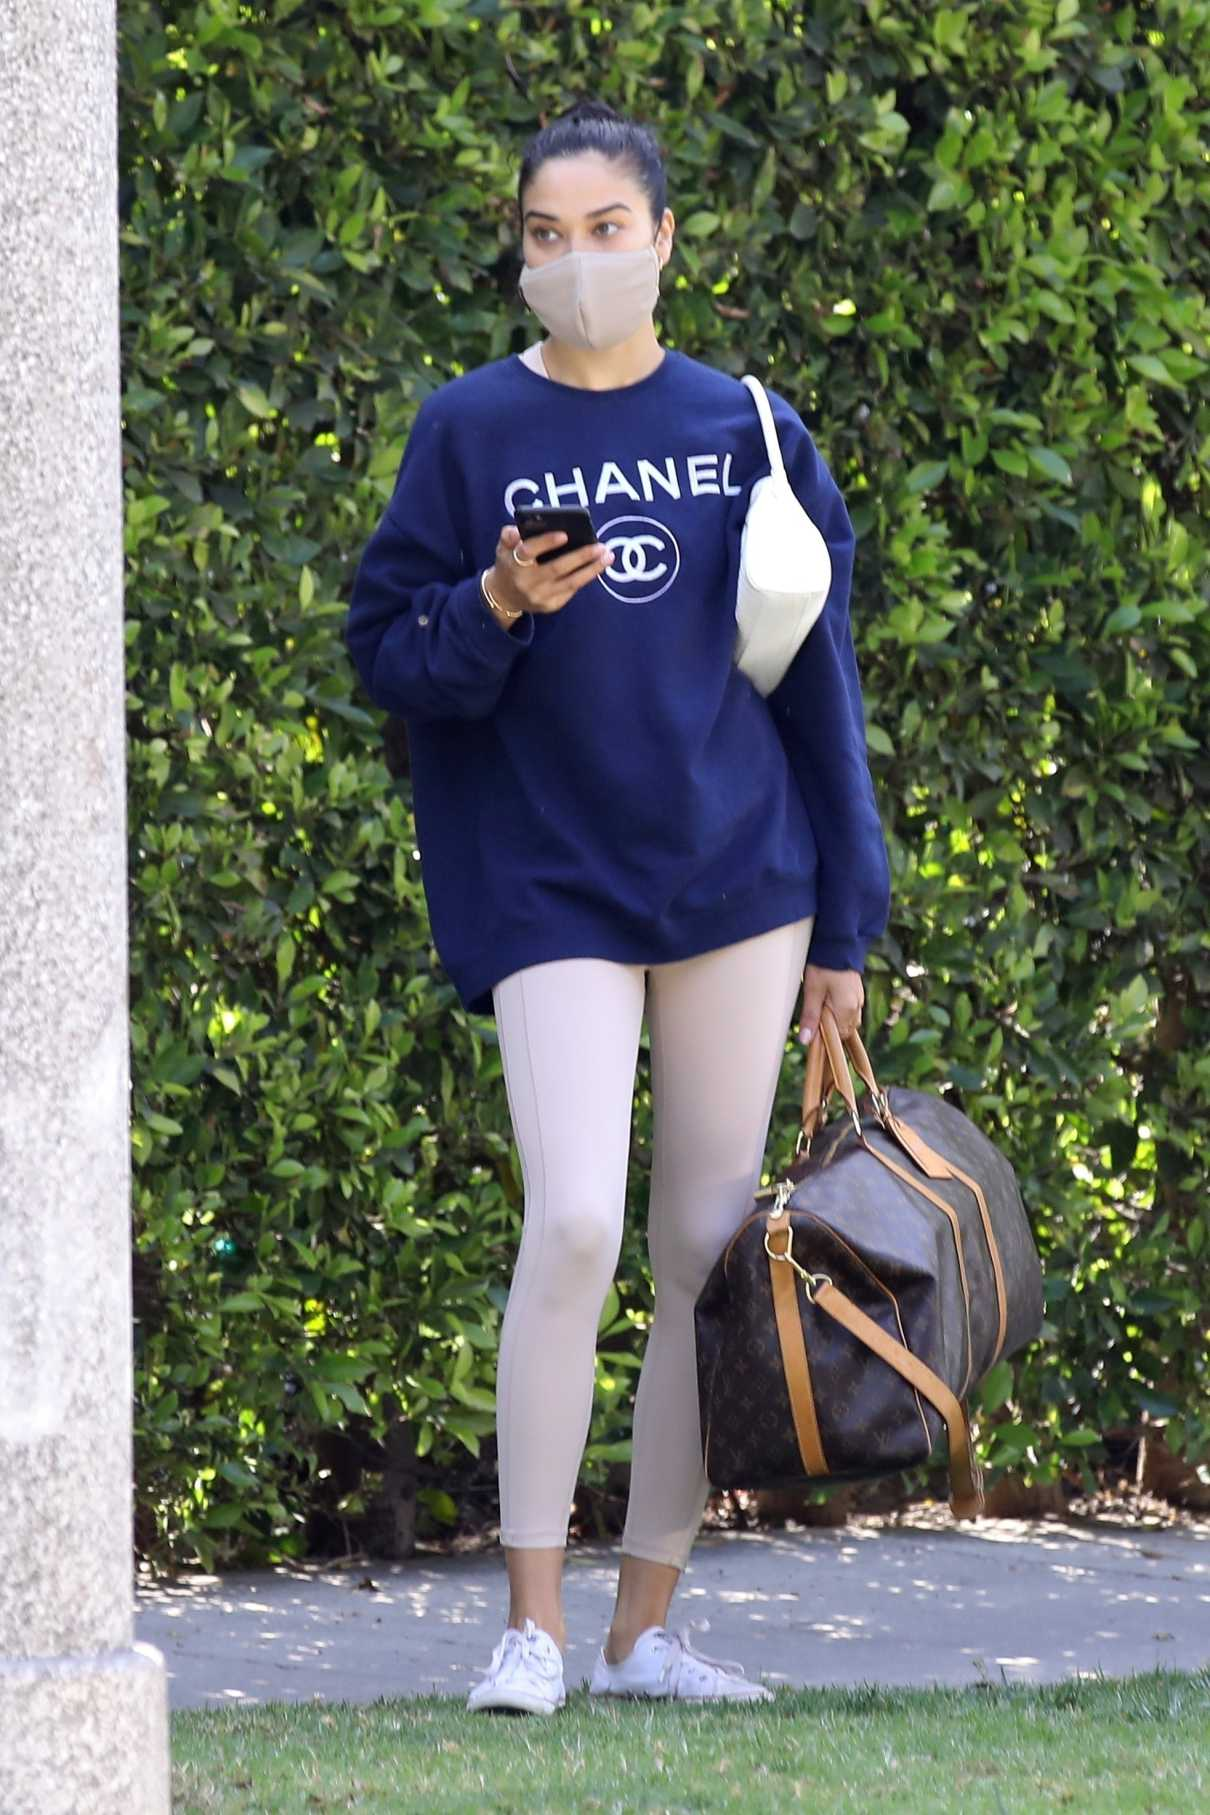 Shanina Shaik in a Blue Chanel Sweatshirt